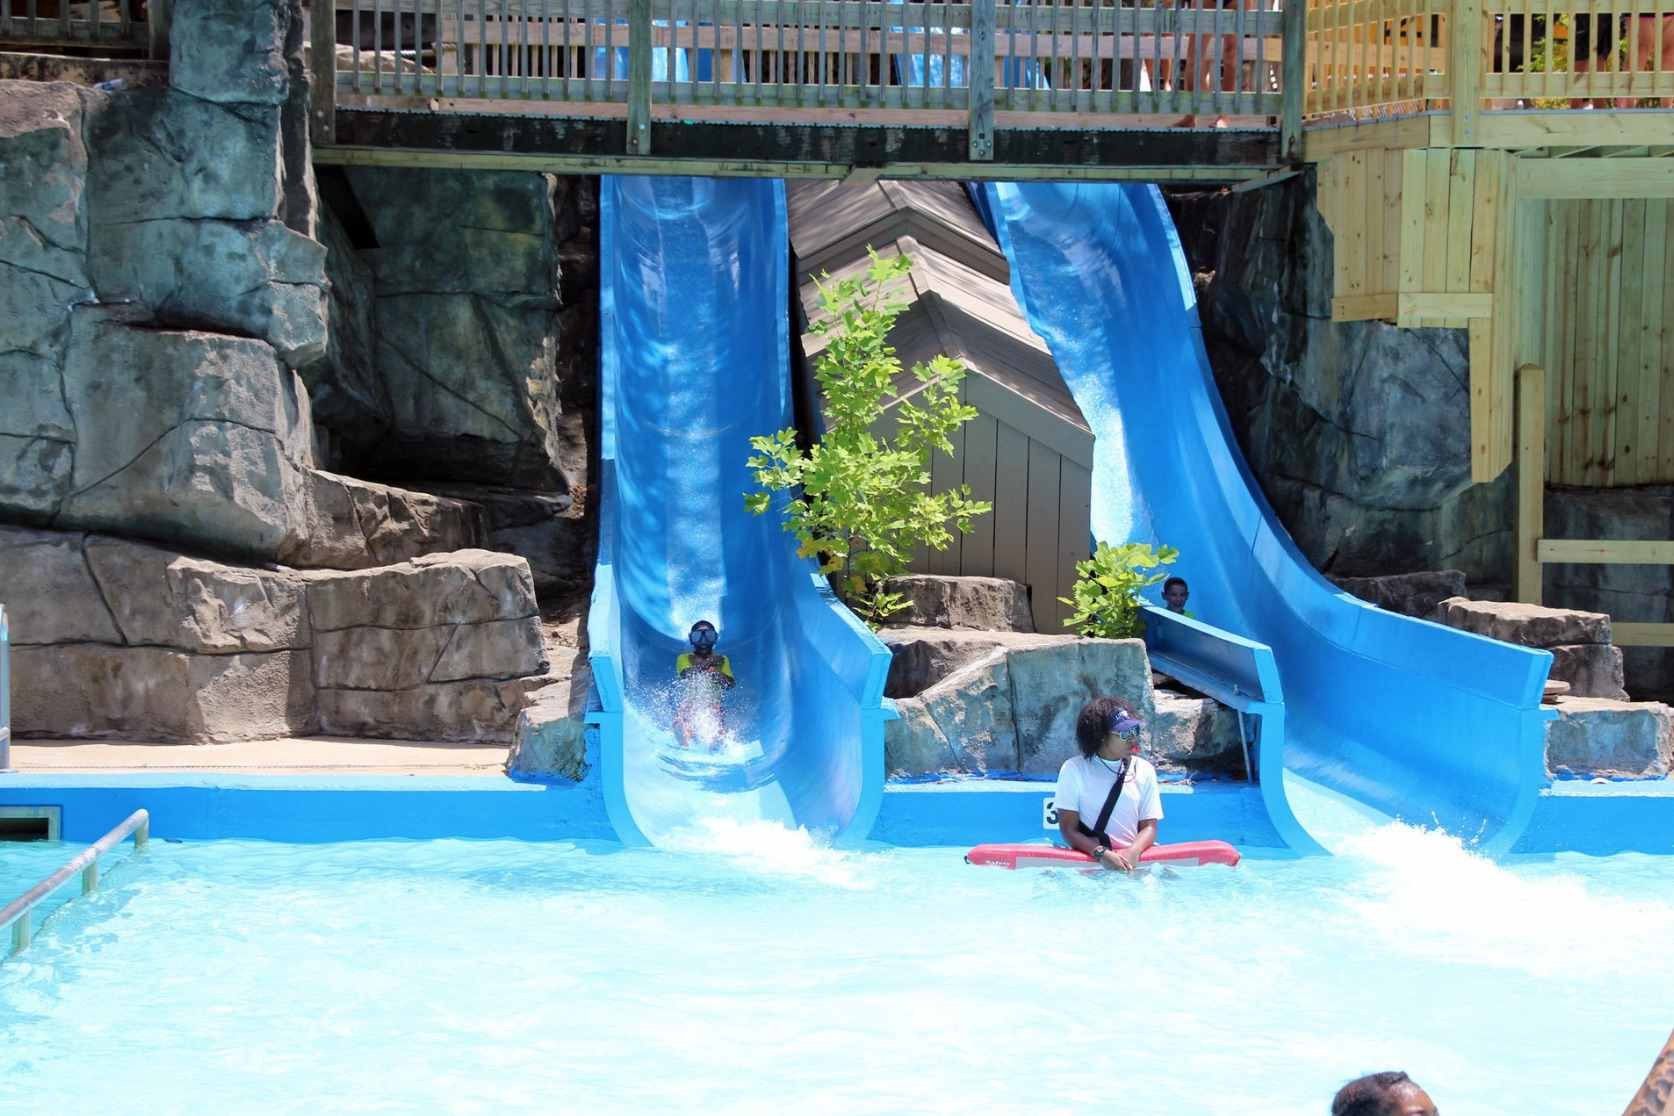 Lizard's Tail slide ride at Six Flags White Water